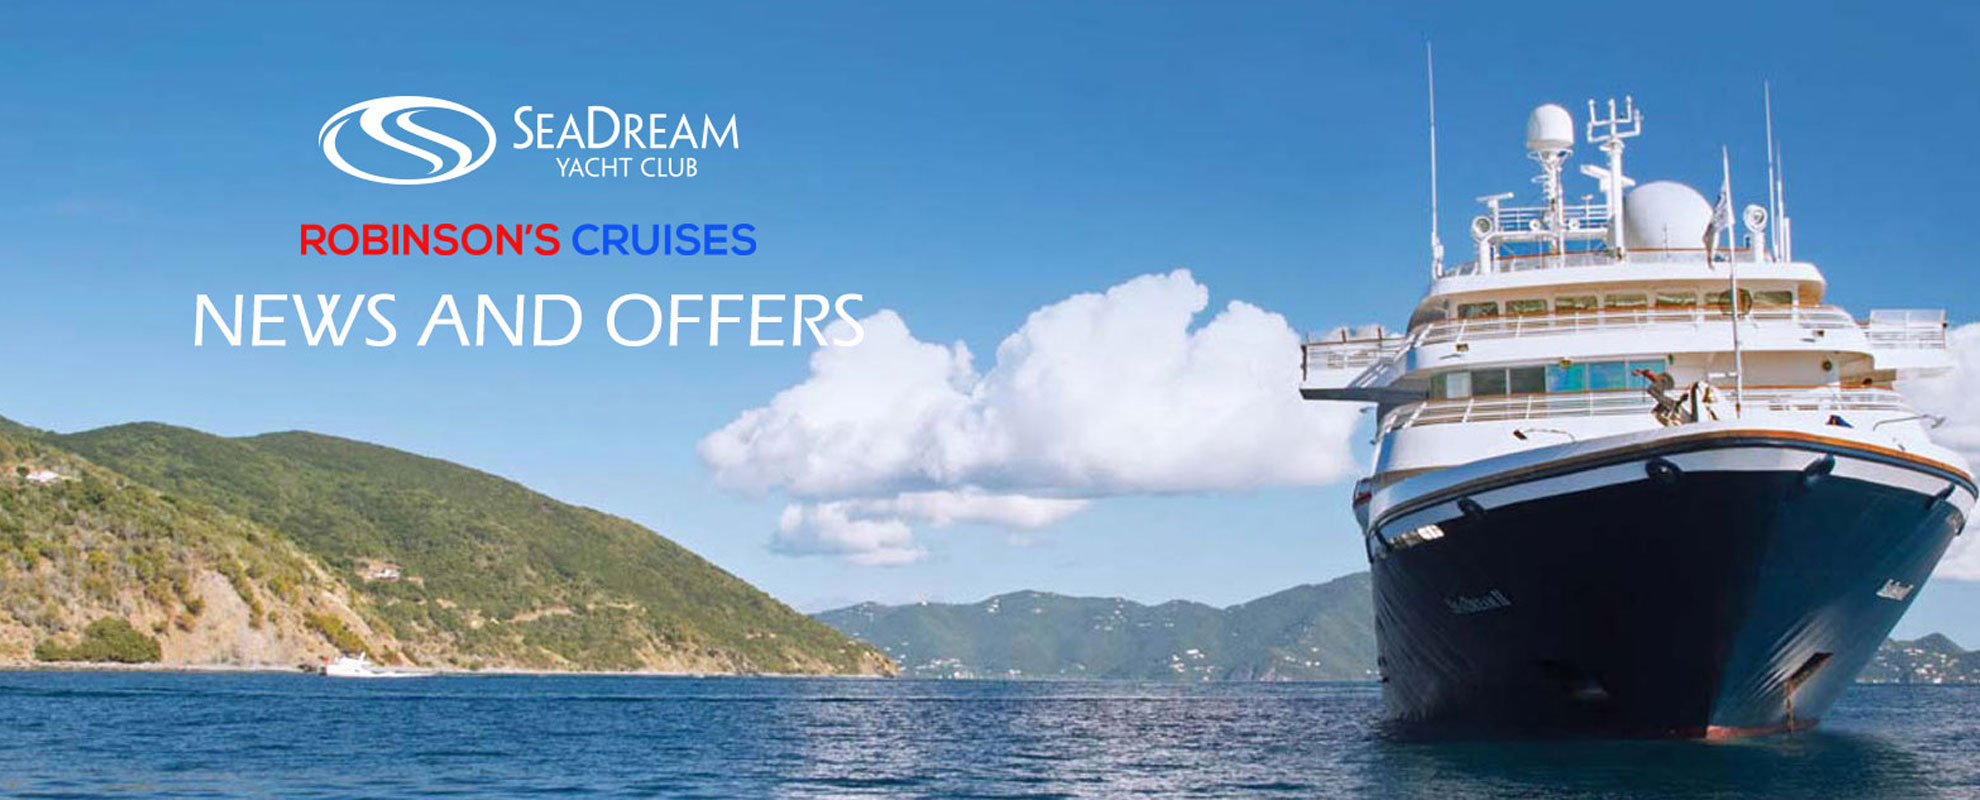 Seadream News and Offers bg